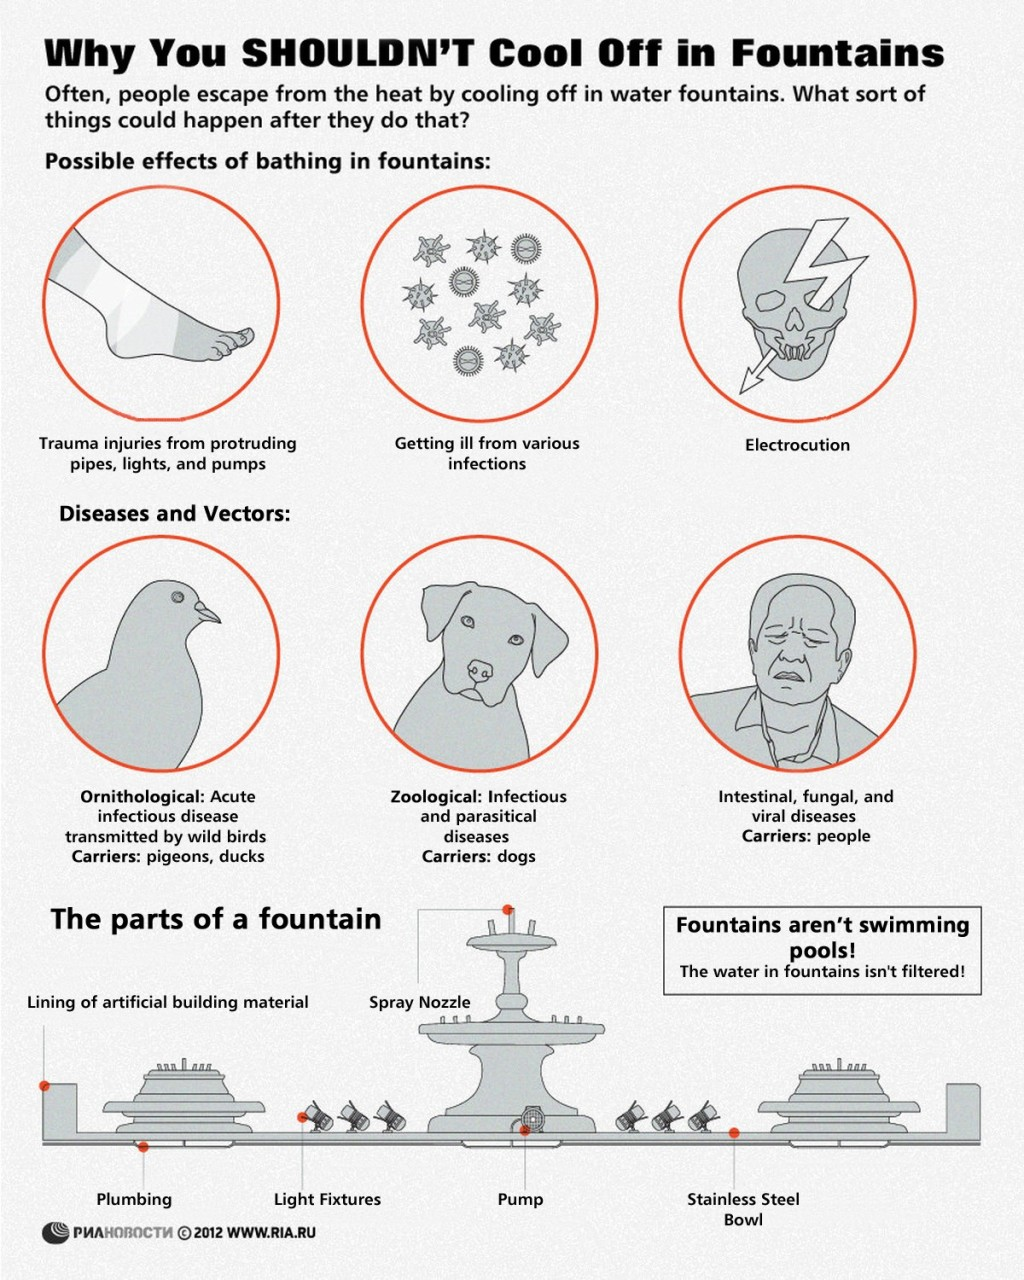 00 RIA-Novosti Infographics. Why You Shouldn't Cool Off in Fountains. 2012